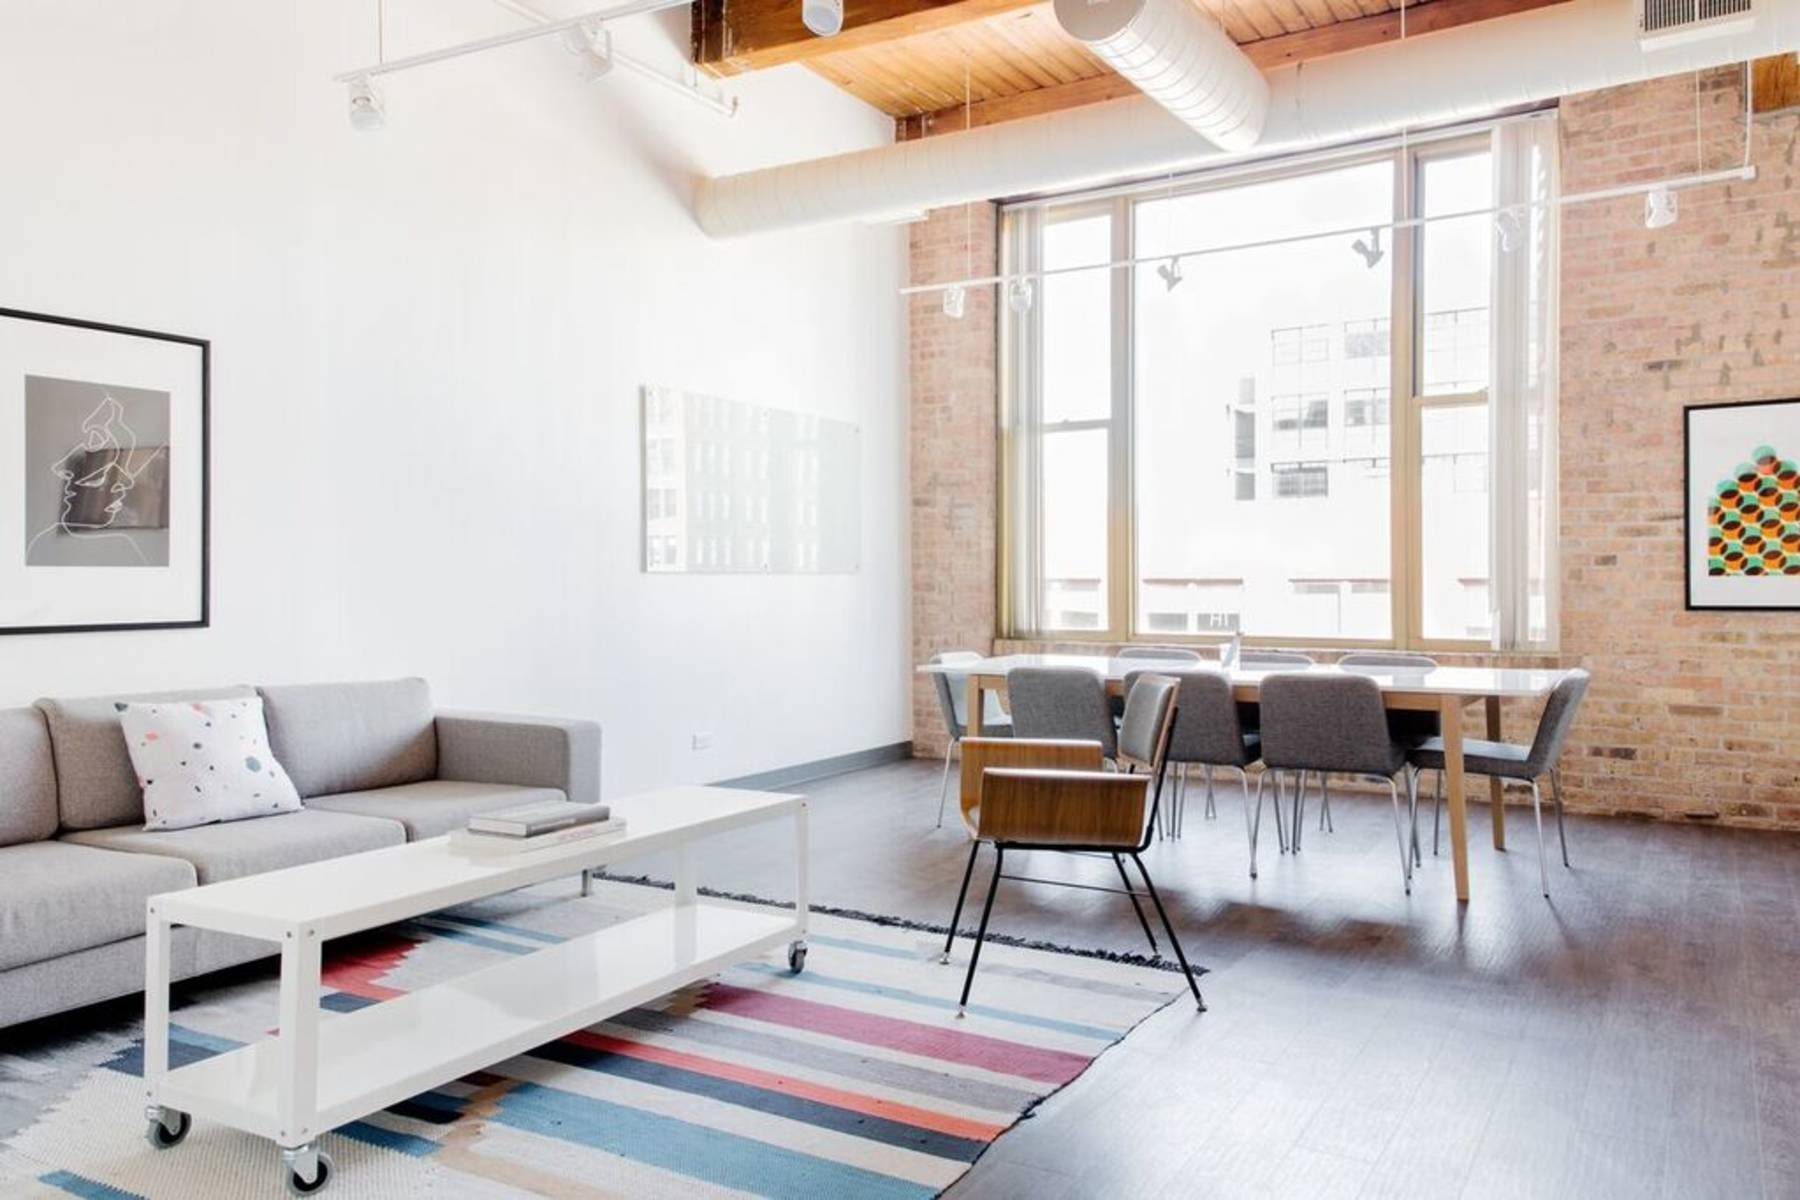 Breather - A space to work, meet and focus